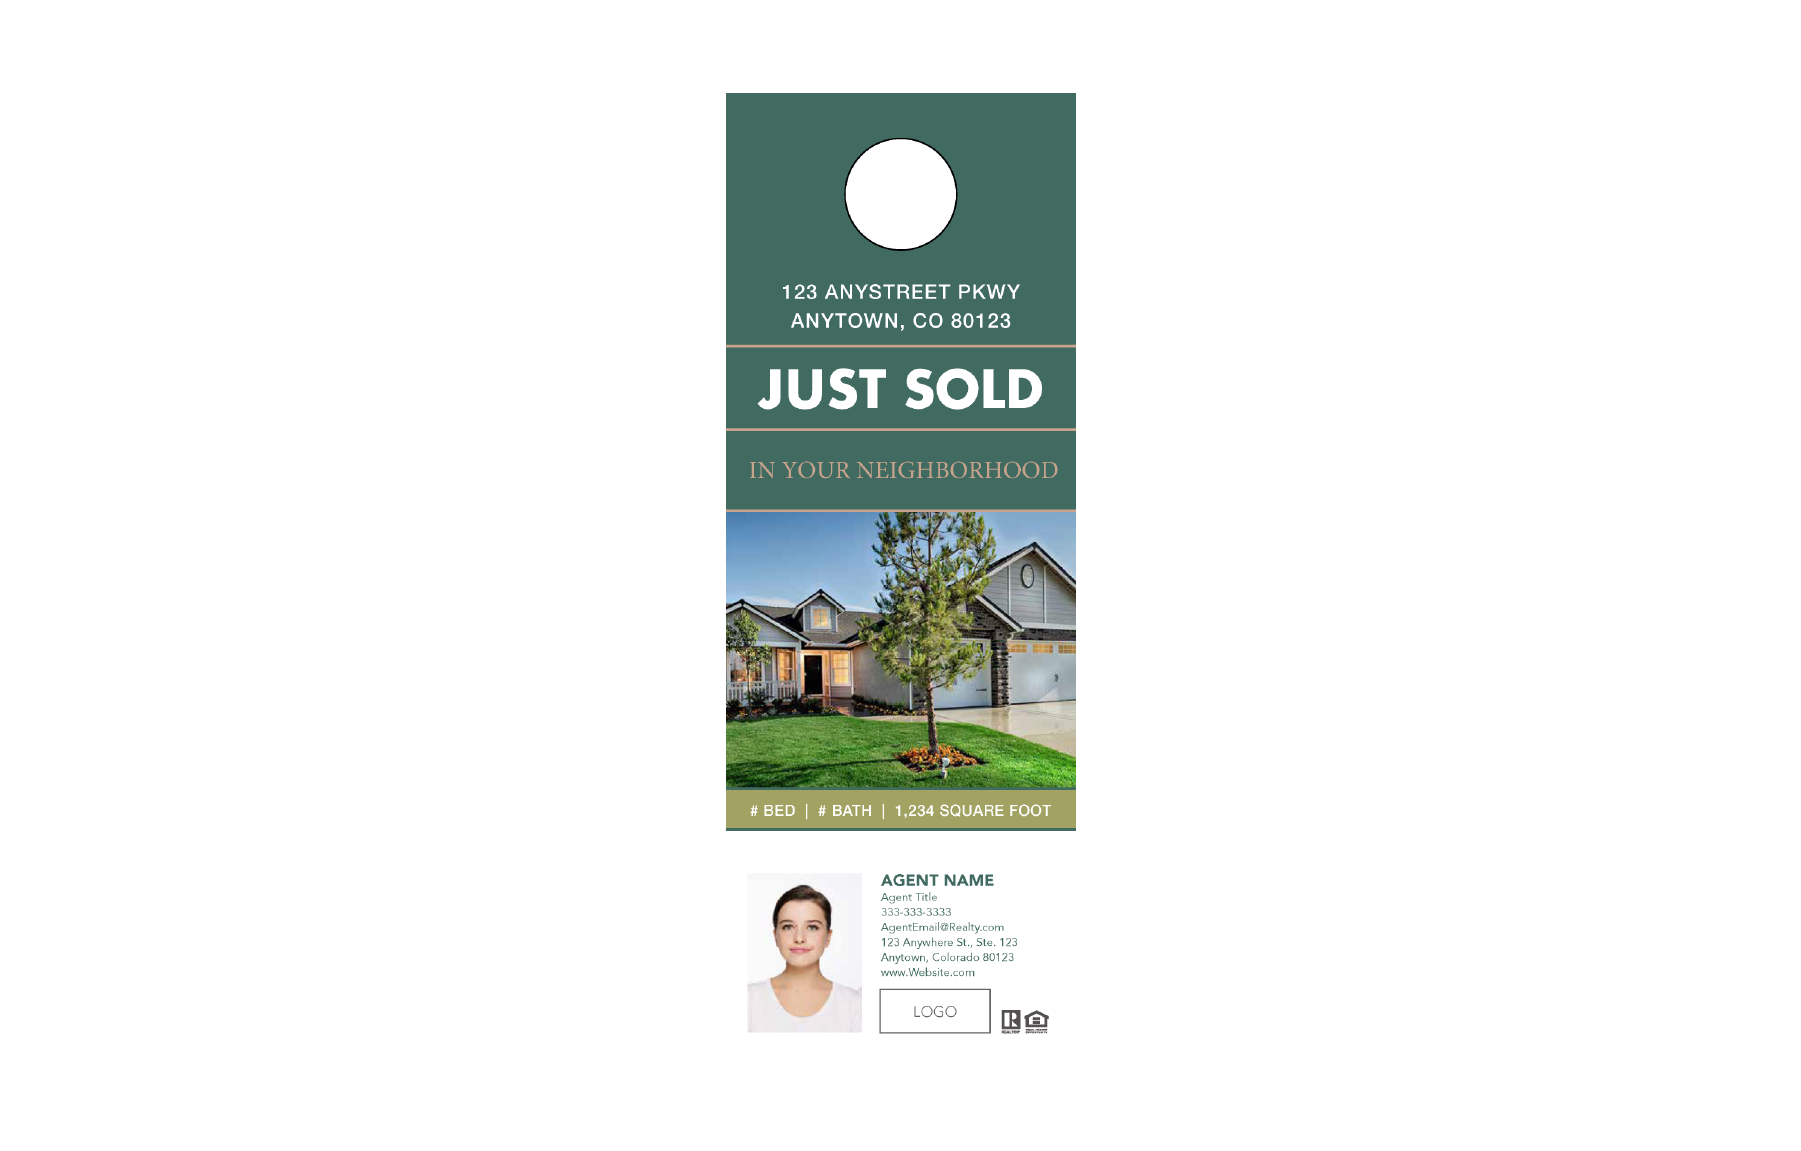 Plumb Marketing Doorhanger 10 One Sided Green - Just Sold - 1712